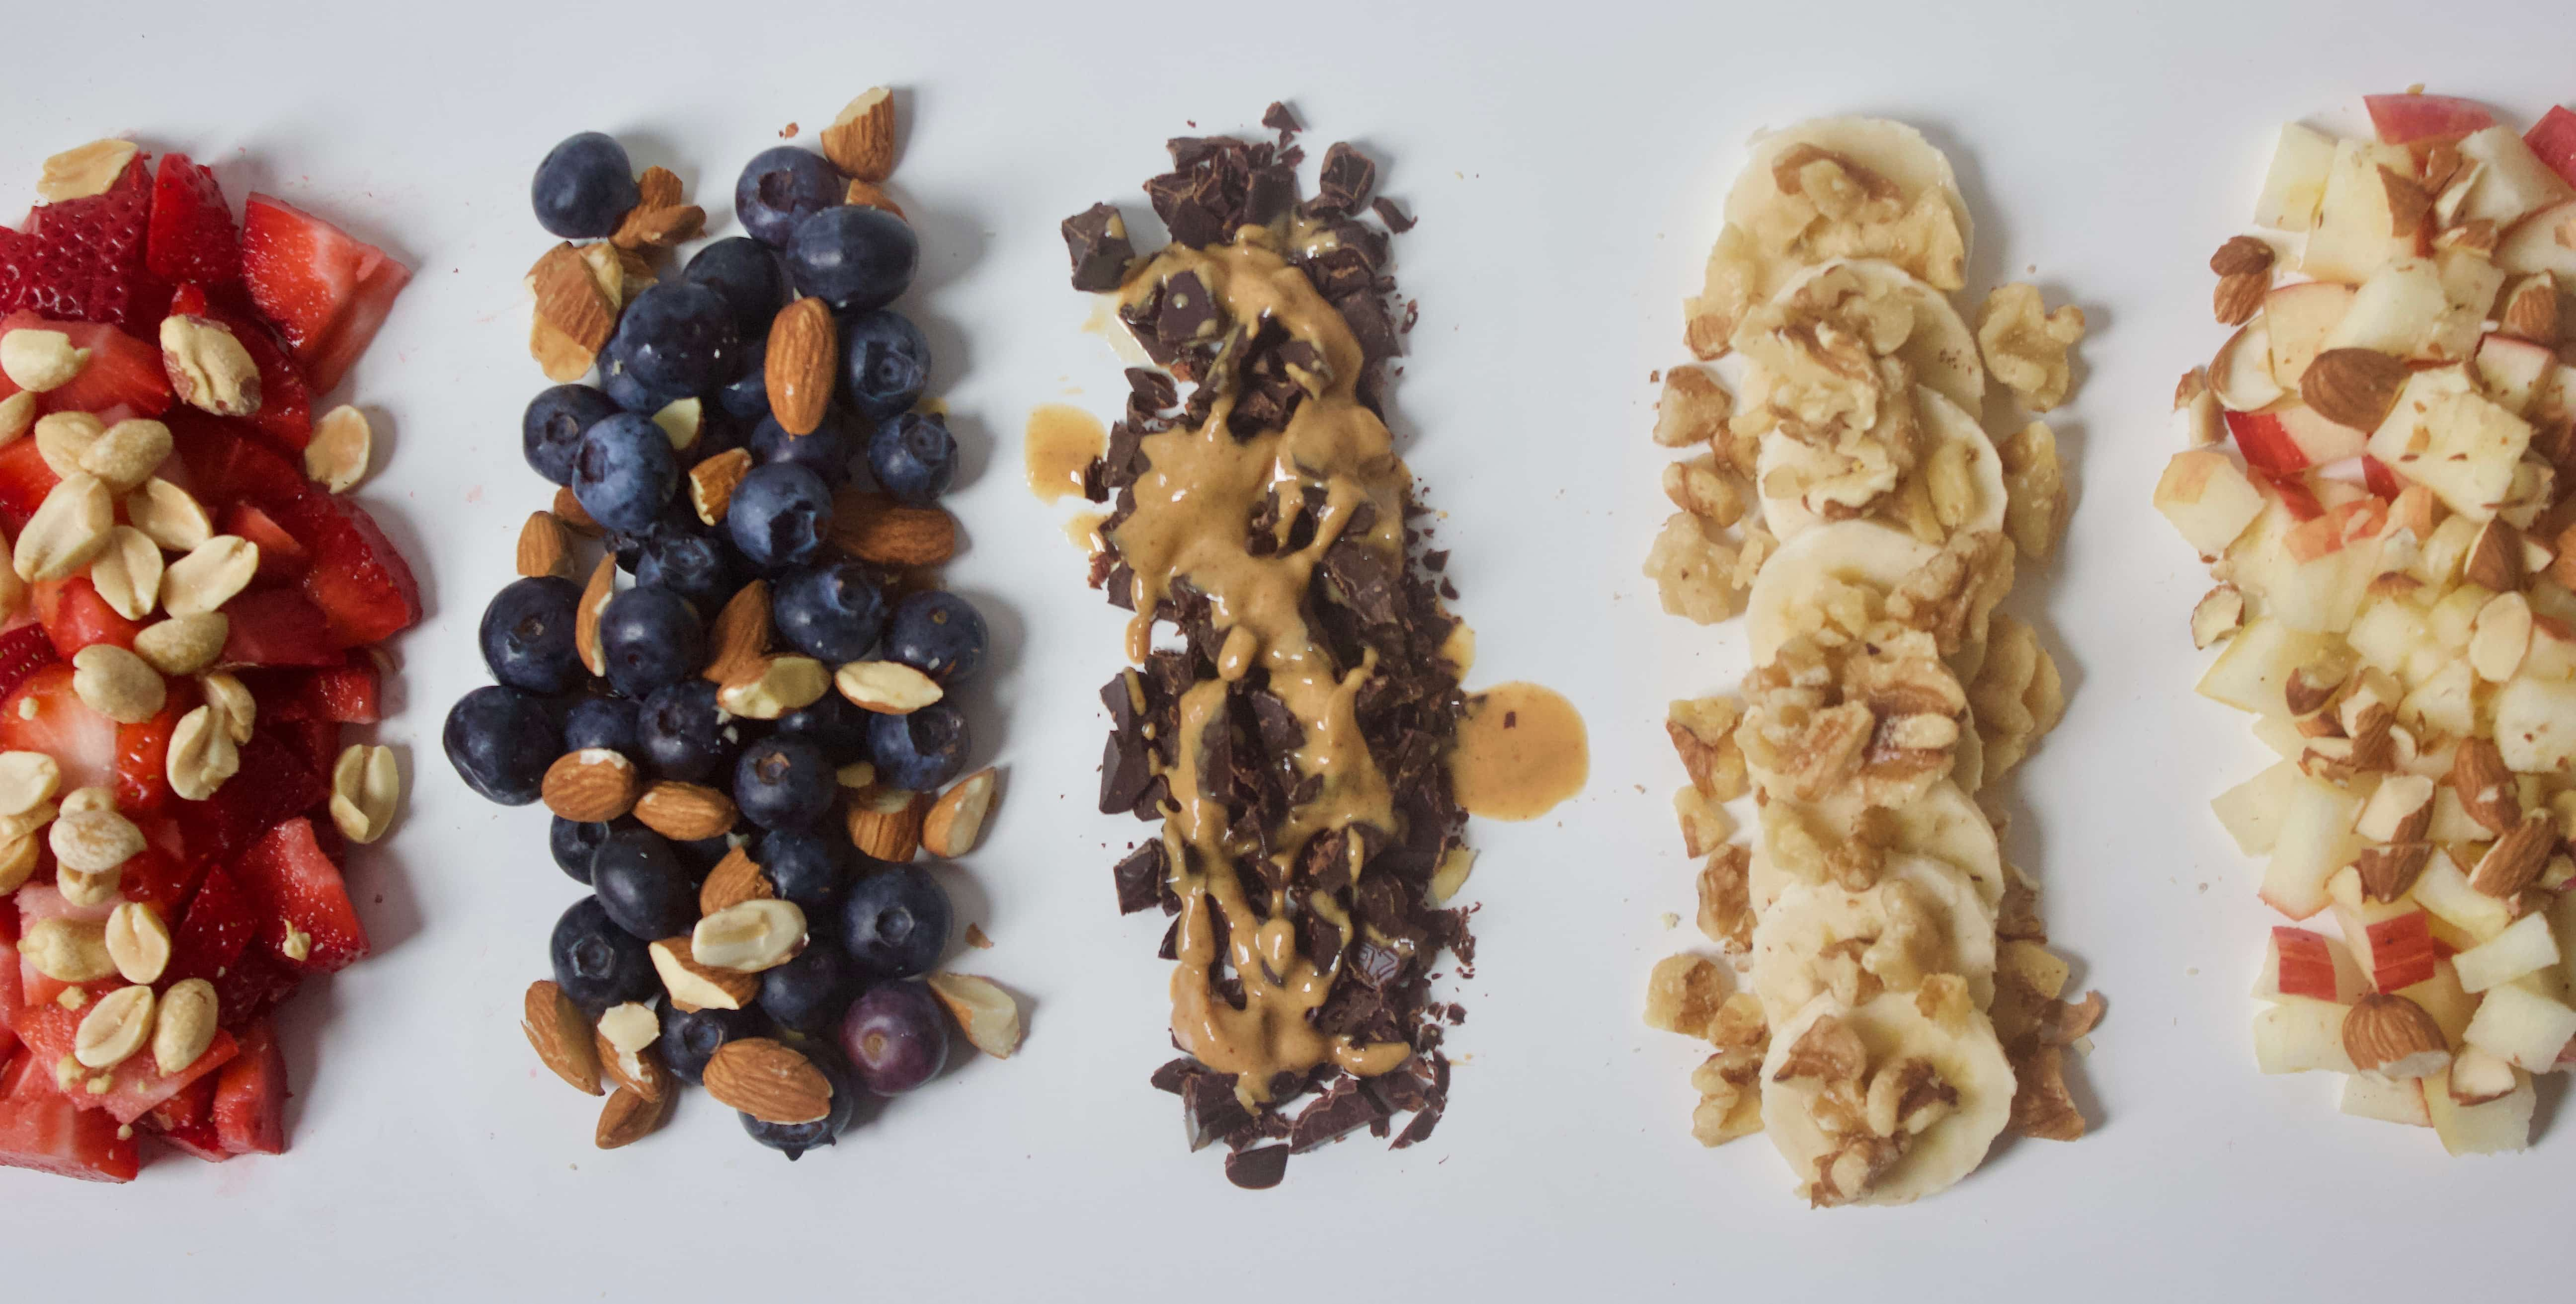 21 day fix overnight oats how to make overnight oats